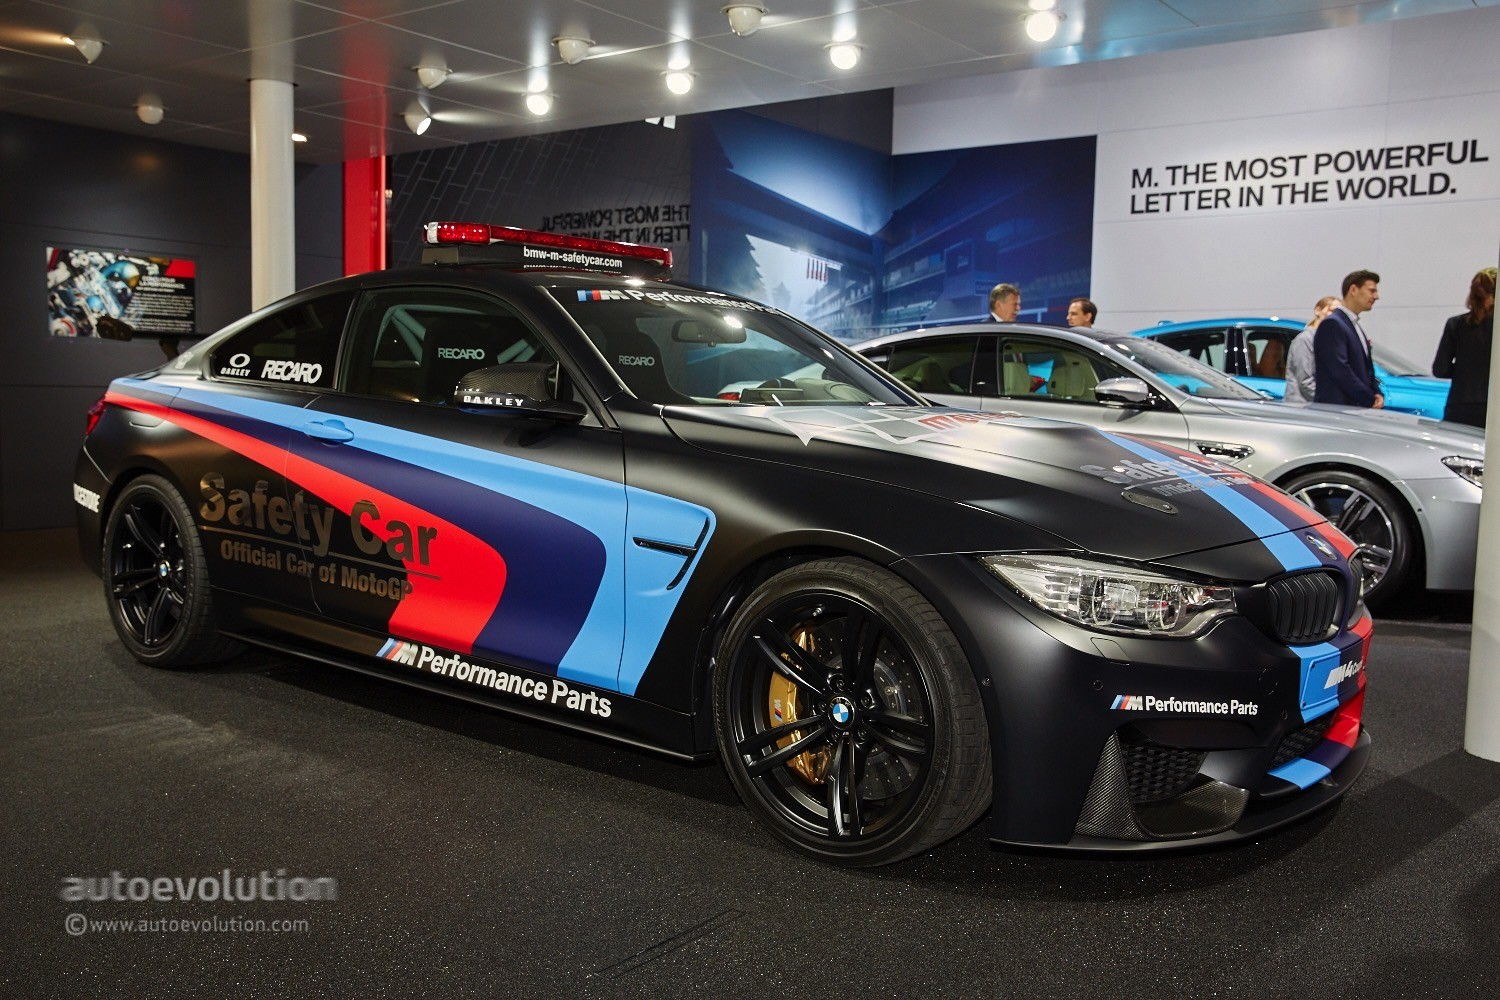 Bmw Has The M4 Safety Car S Water Injection Cooled Engine